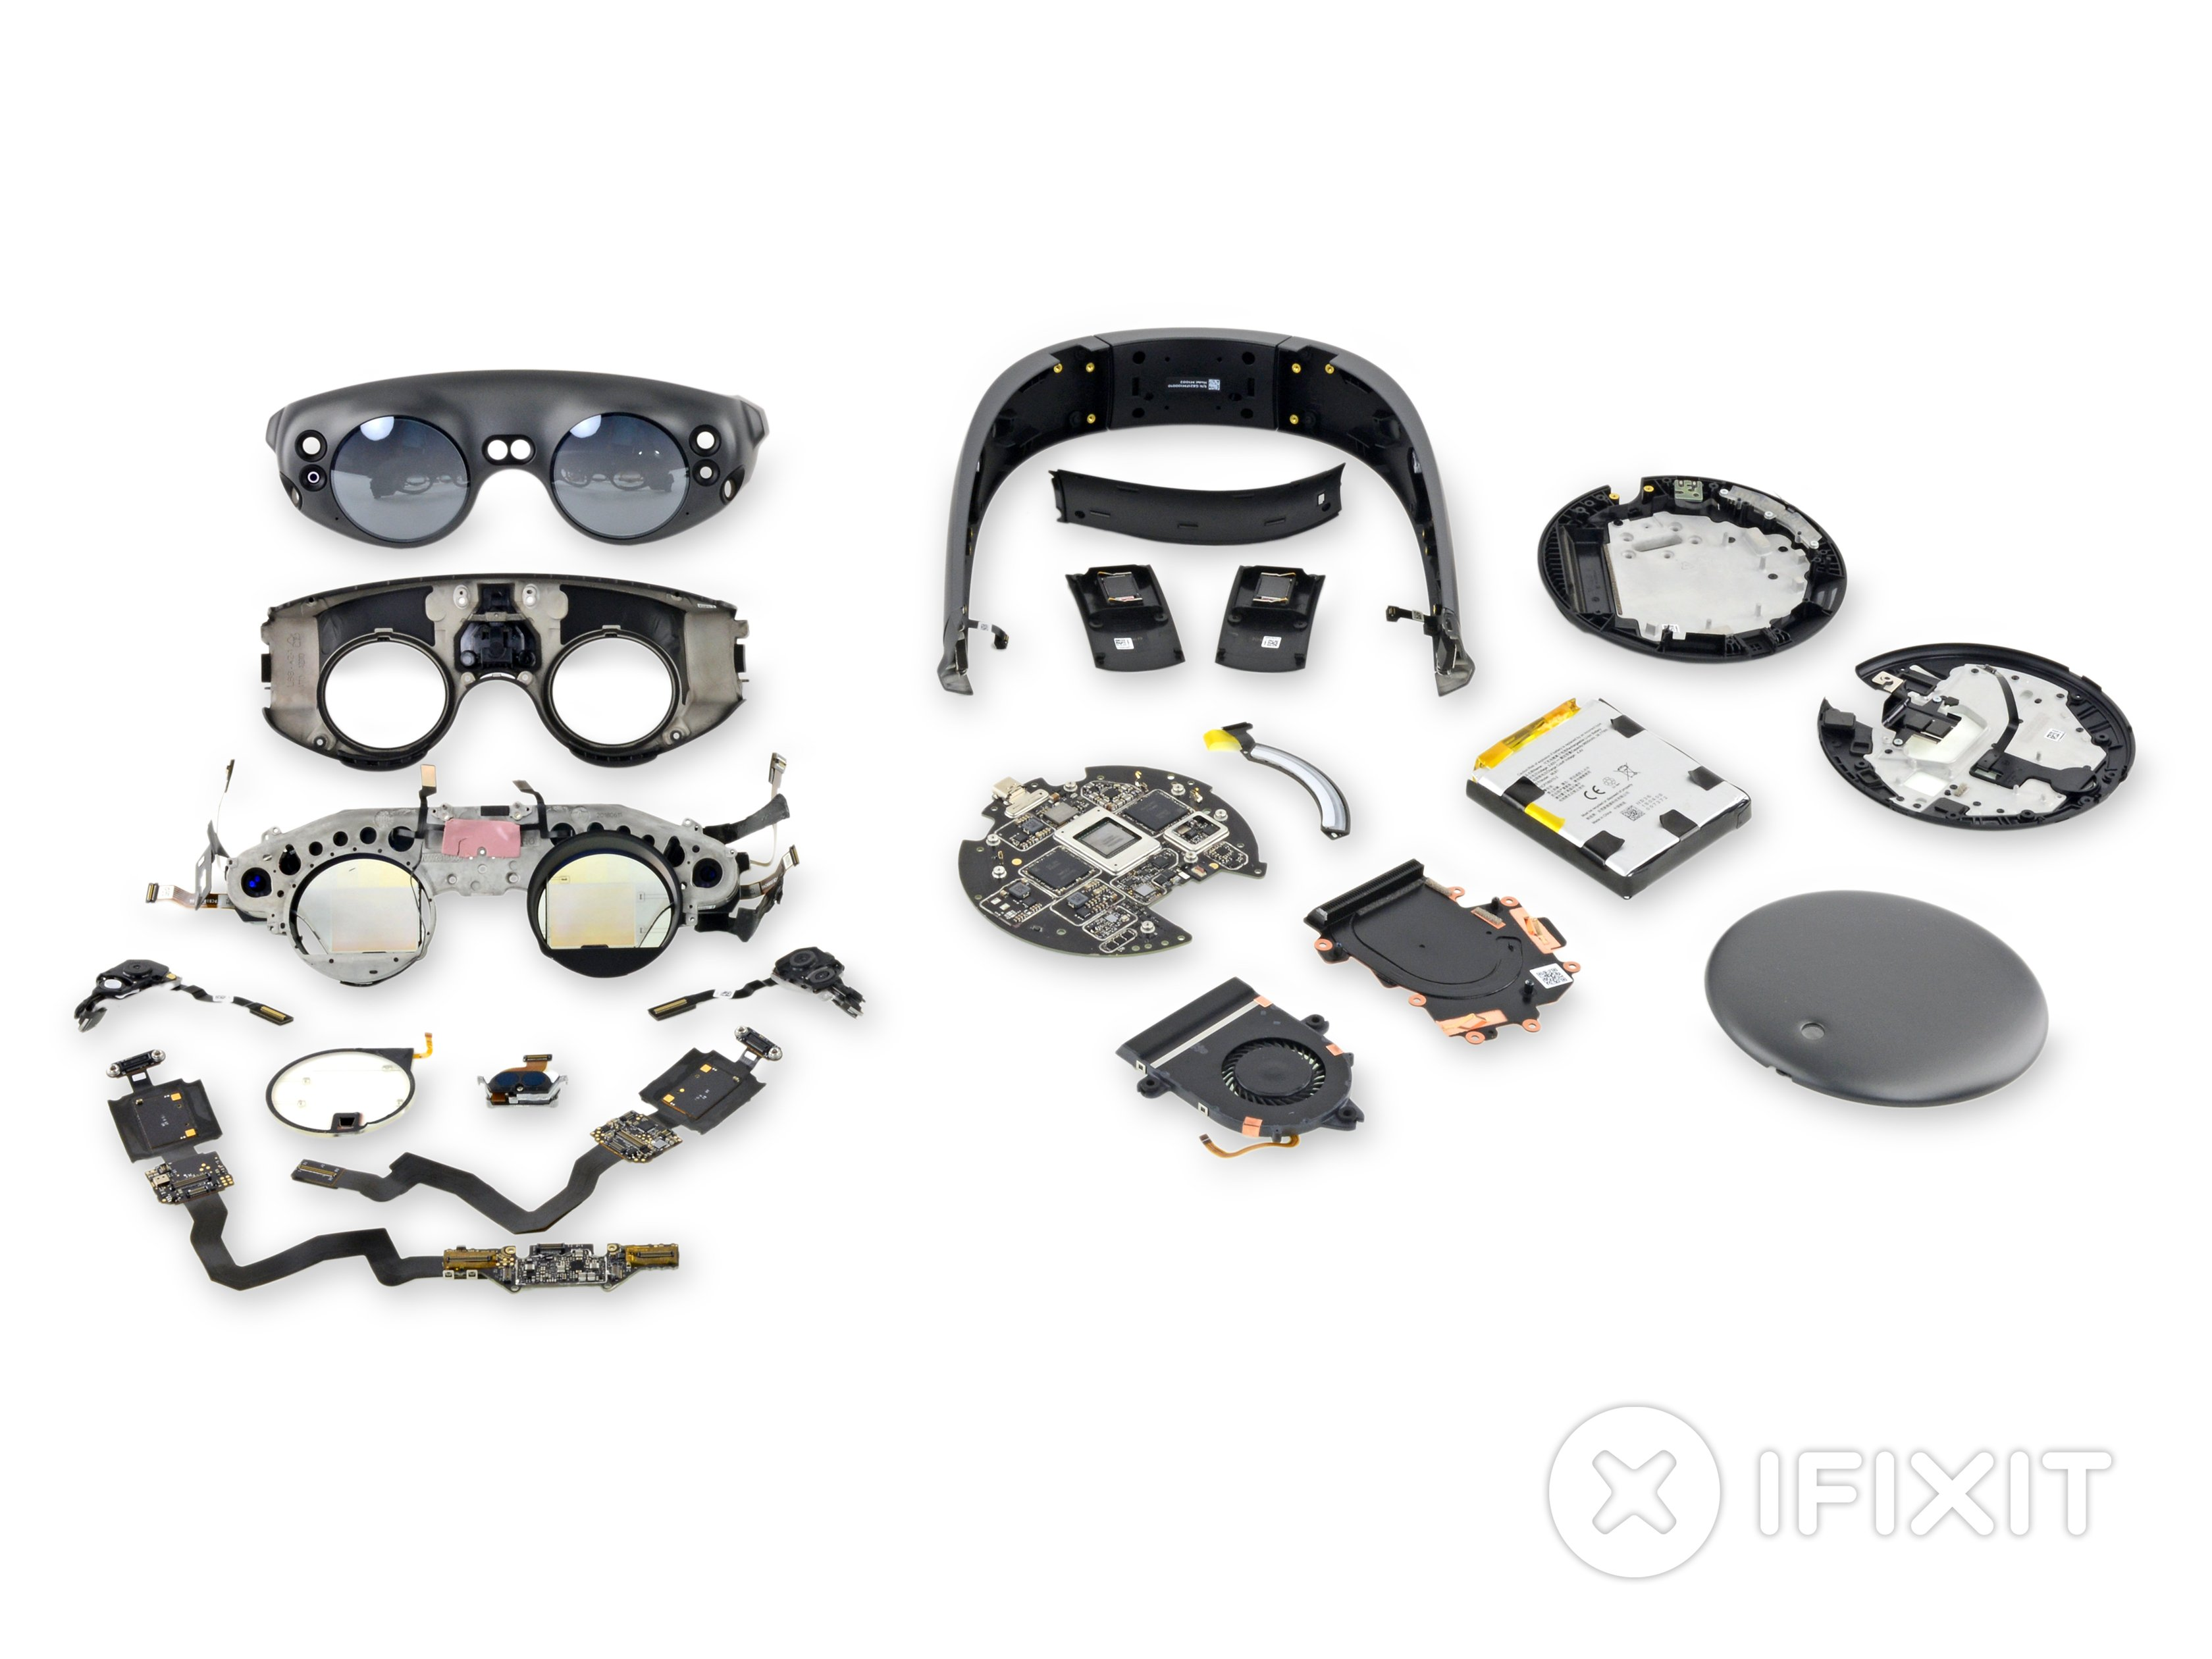 Magic Leap One Teardown